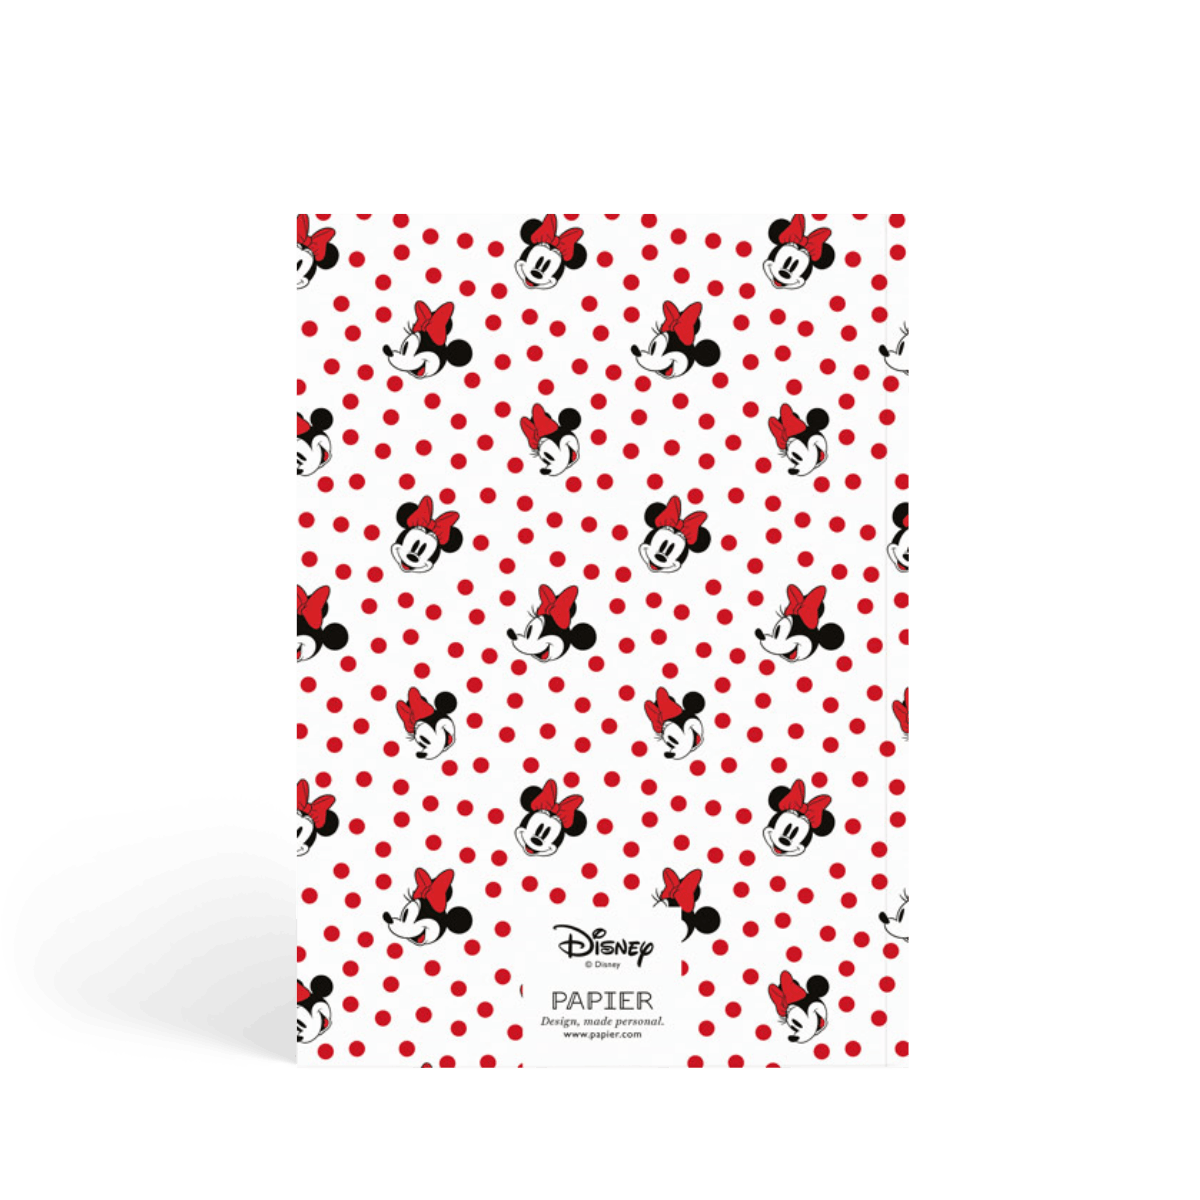 Https%3a%2f%2fwww.papier.com%2fproduct image%2f56023%2f5%2fminnie mouse 13460 back 1570129325.png?ixlib=rb 1.1